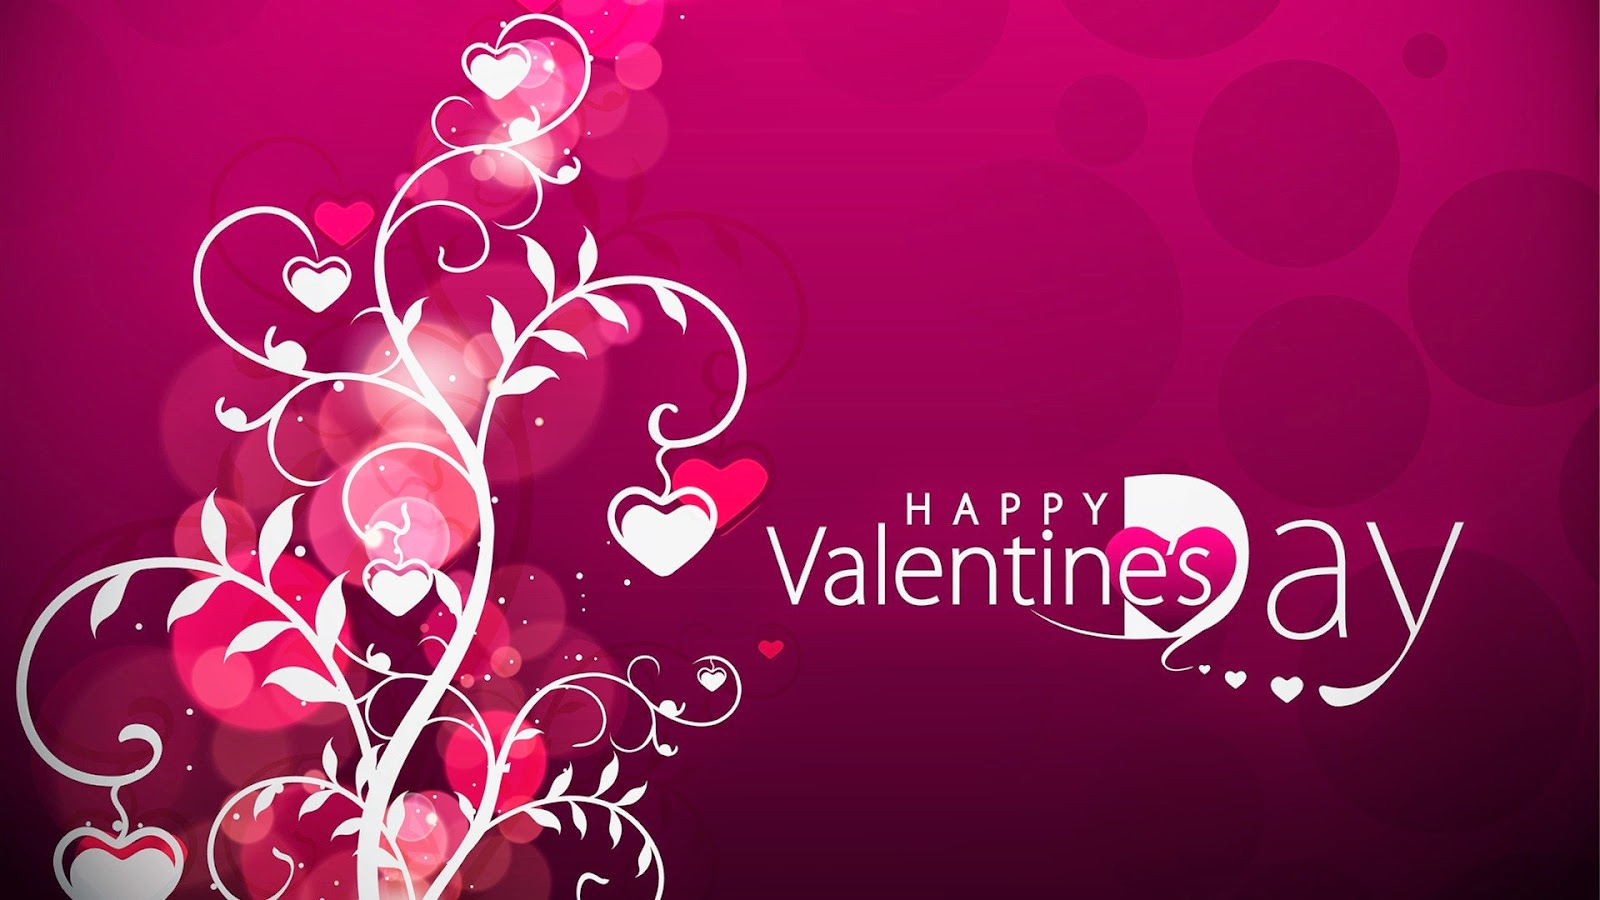 Valentines Day Romantic SMS Messages Wishes